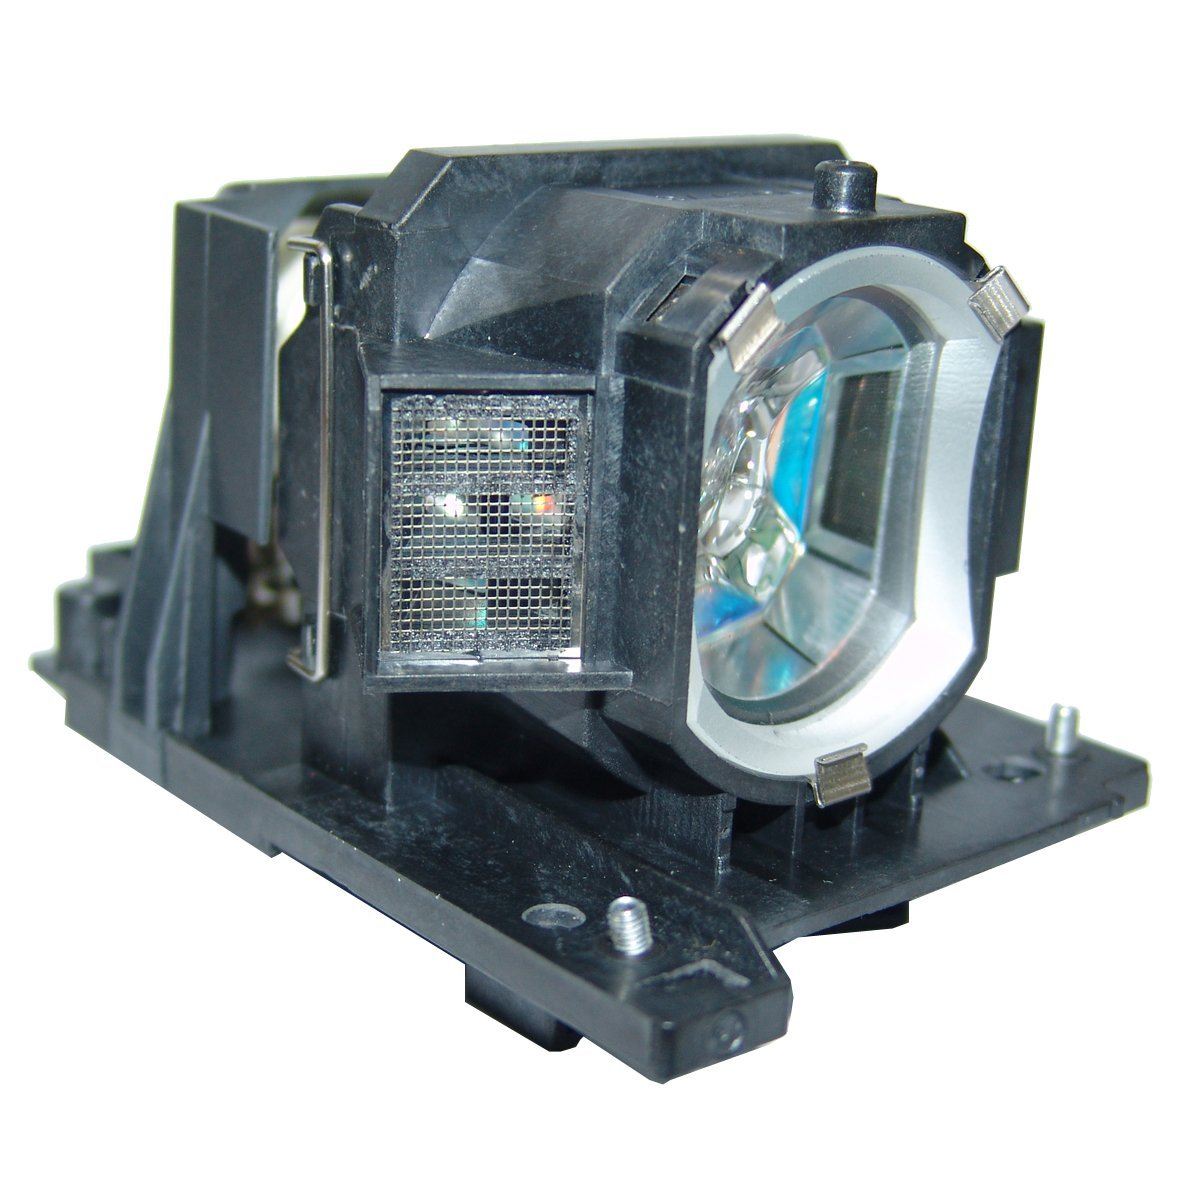 Projector Lamp Bulb DT01171 DT-01171 for HITACHI CP-X4021N CPX5021N CP-WX4021N with housing compatible projector lamp bulb dt01151 with housing for hitachi cp rx79 ed x26 cp rx82 cp rx93